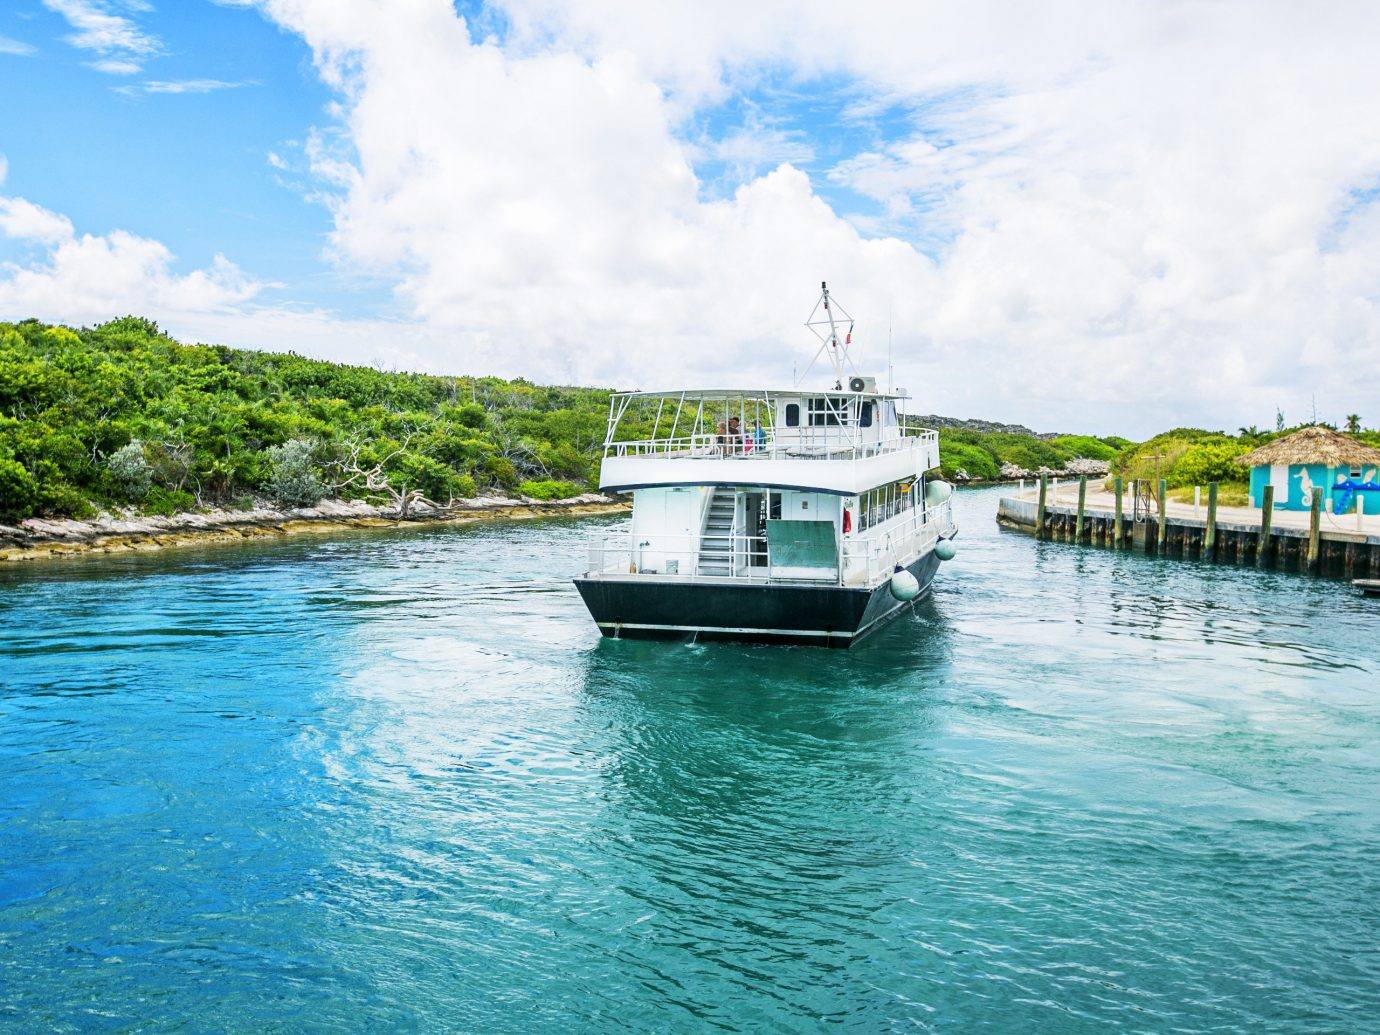 Beach Trip Ideas water sky outdoor Boat landform Sea geographical feature vehicle vacation Ocean shore ferry bay channel Coast caribbean passenger ship waterway Island ship traveling day